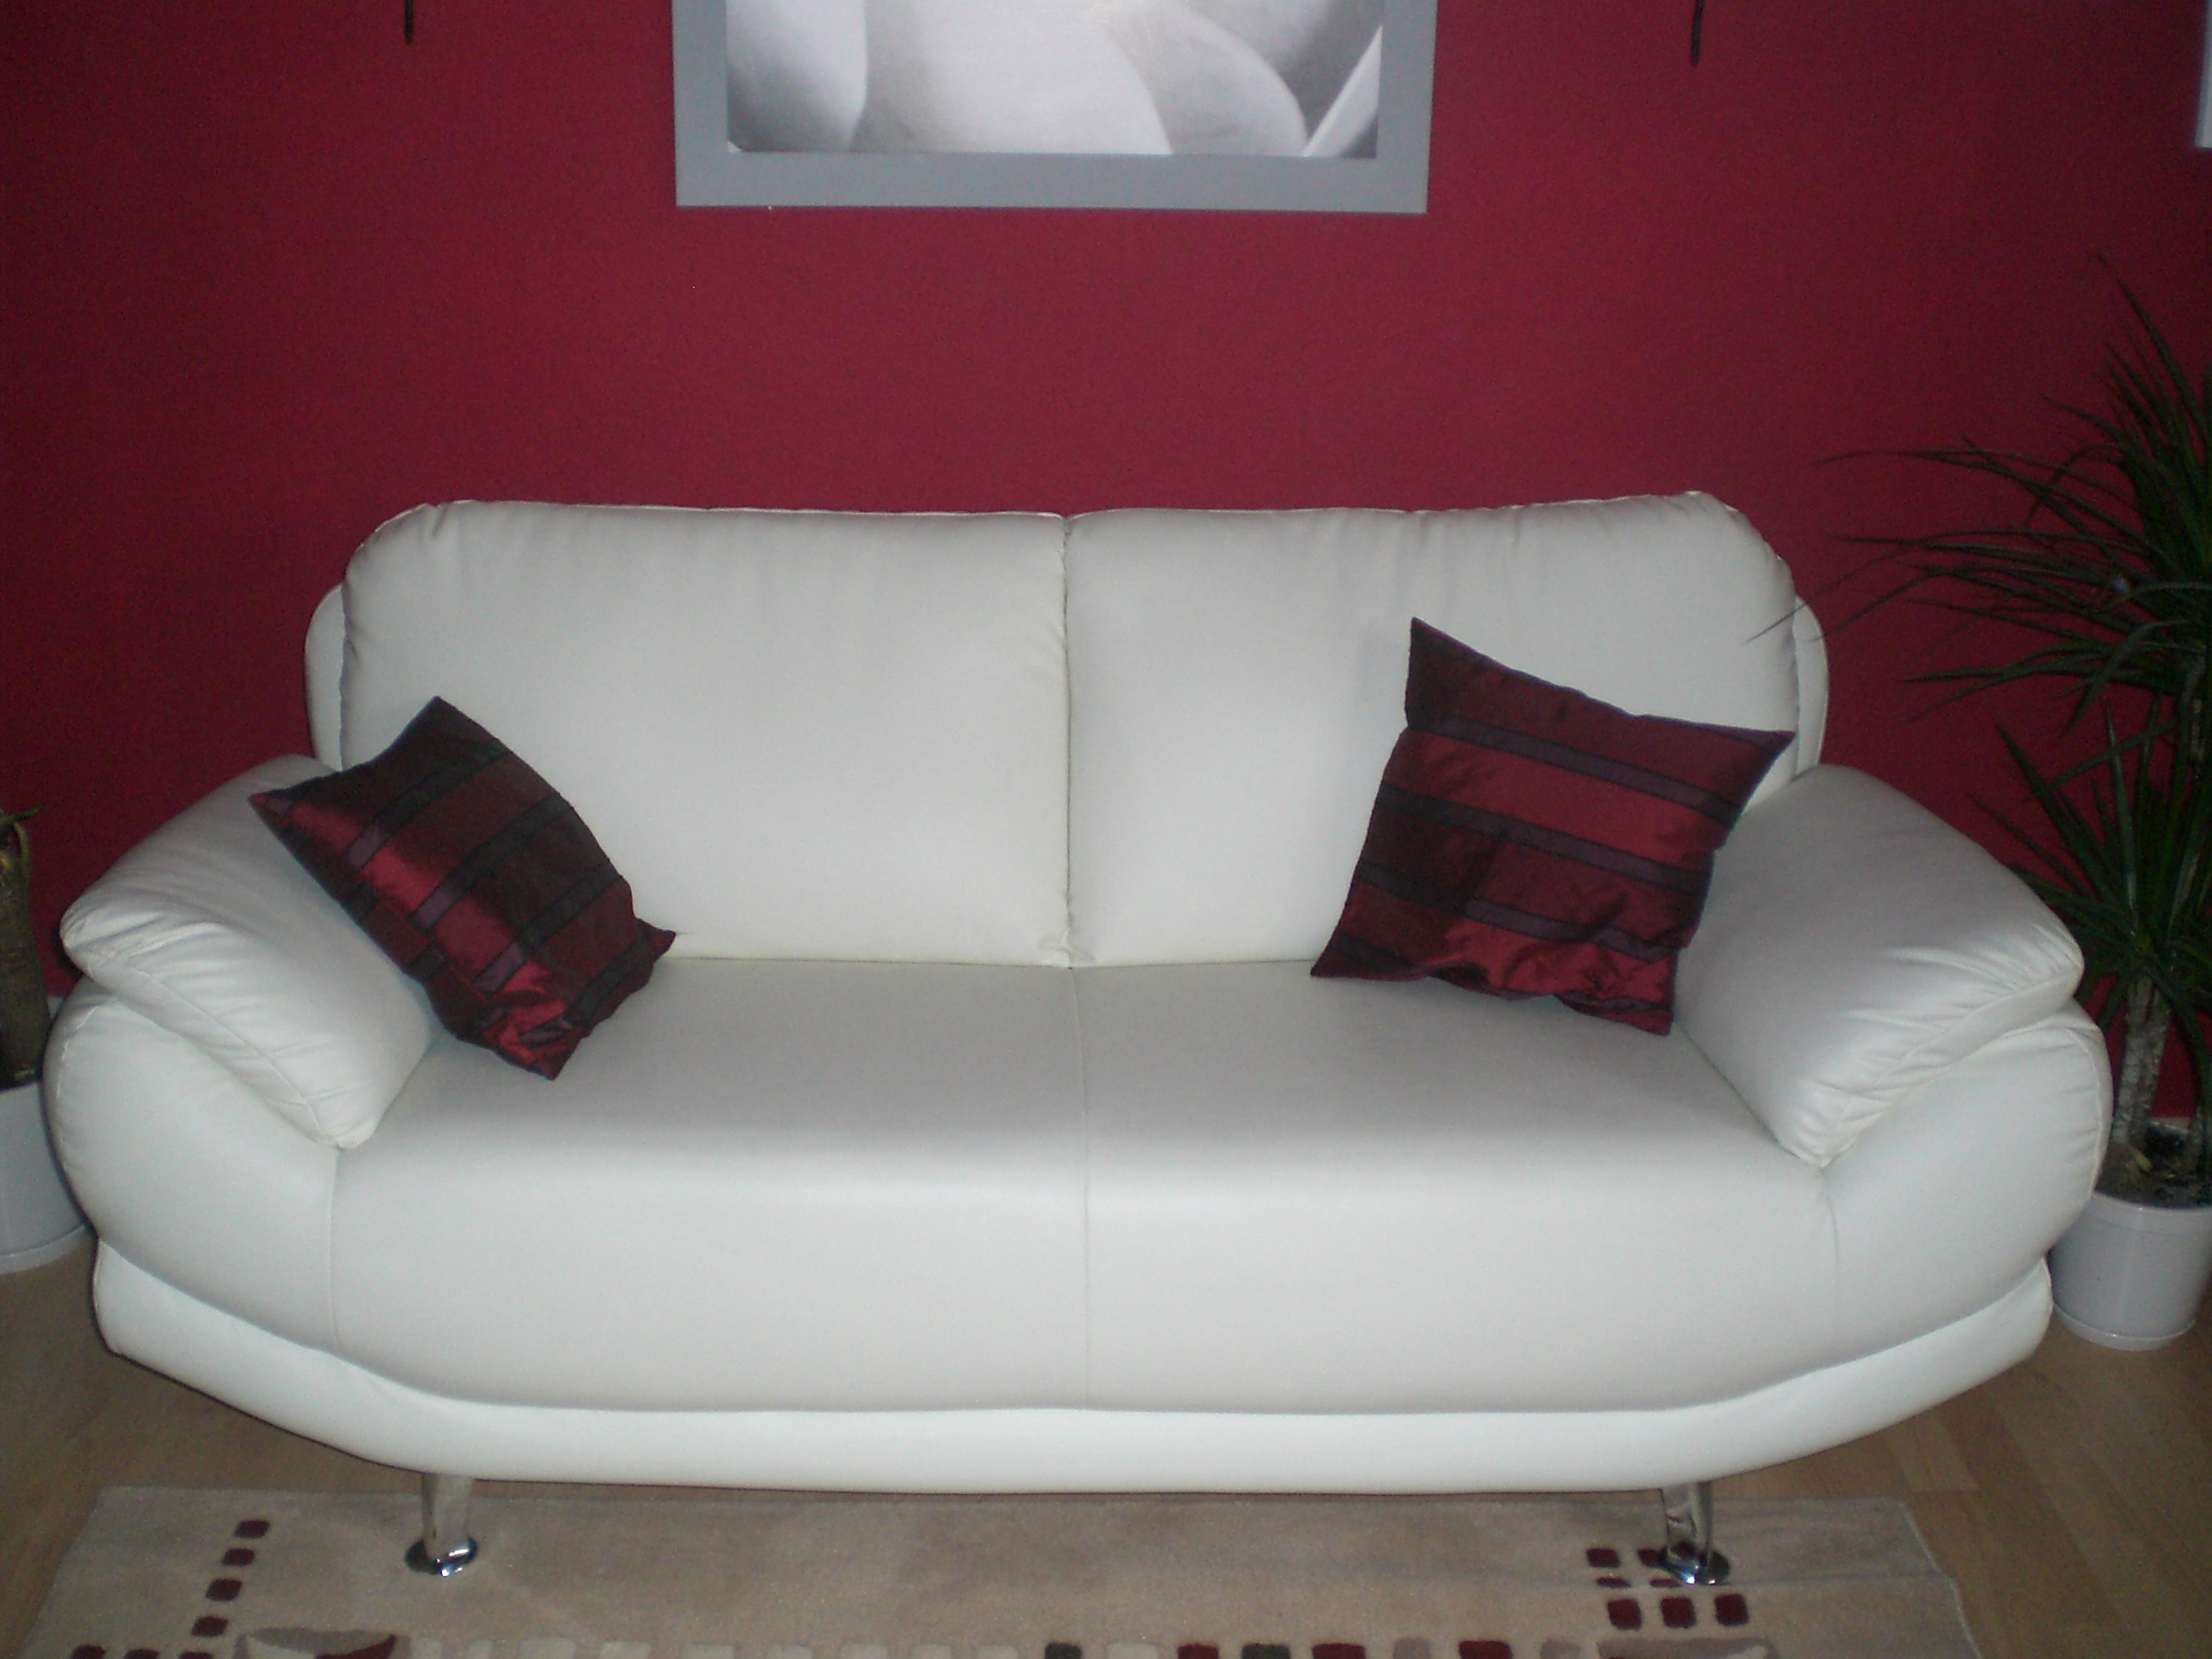 Weiße Ledercouch Moderne Ledercouch Fast Neu Polster Sessel Couch